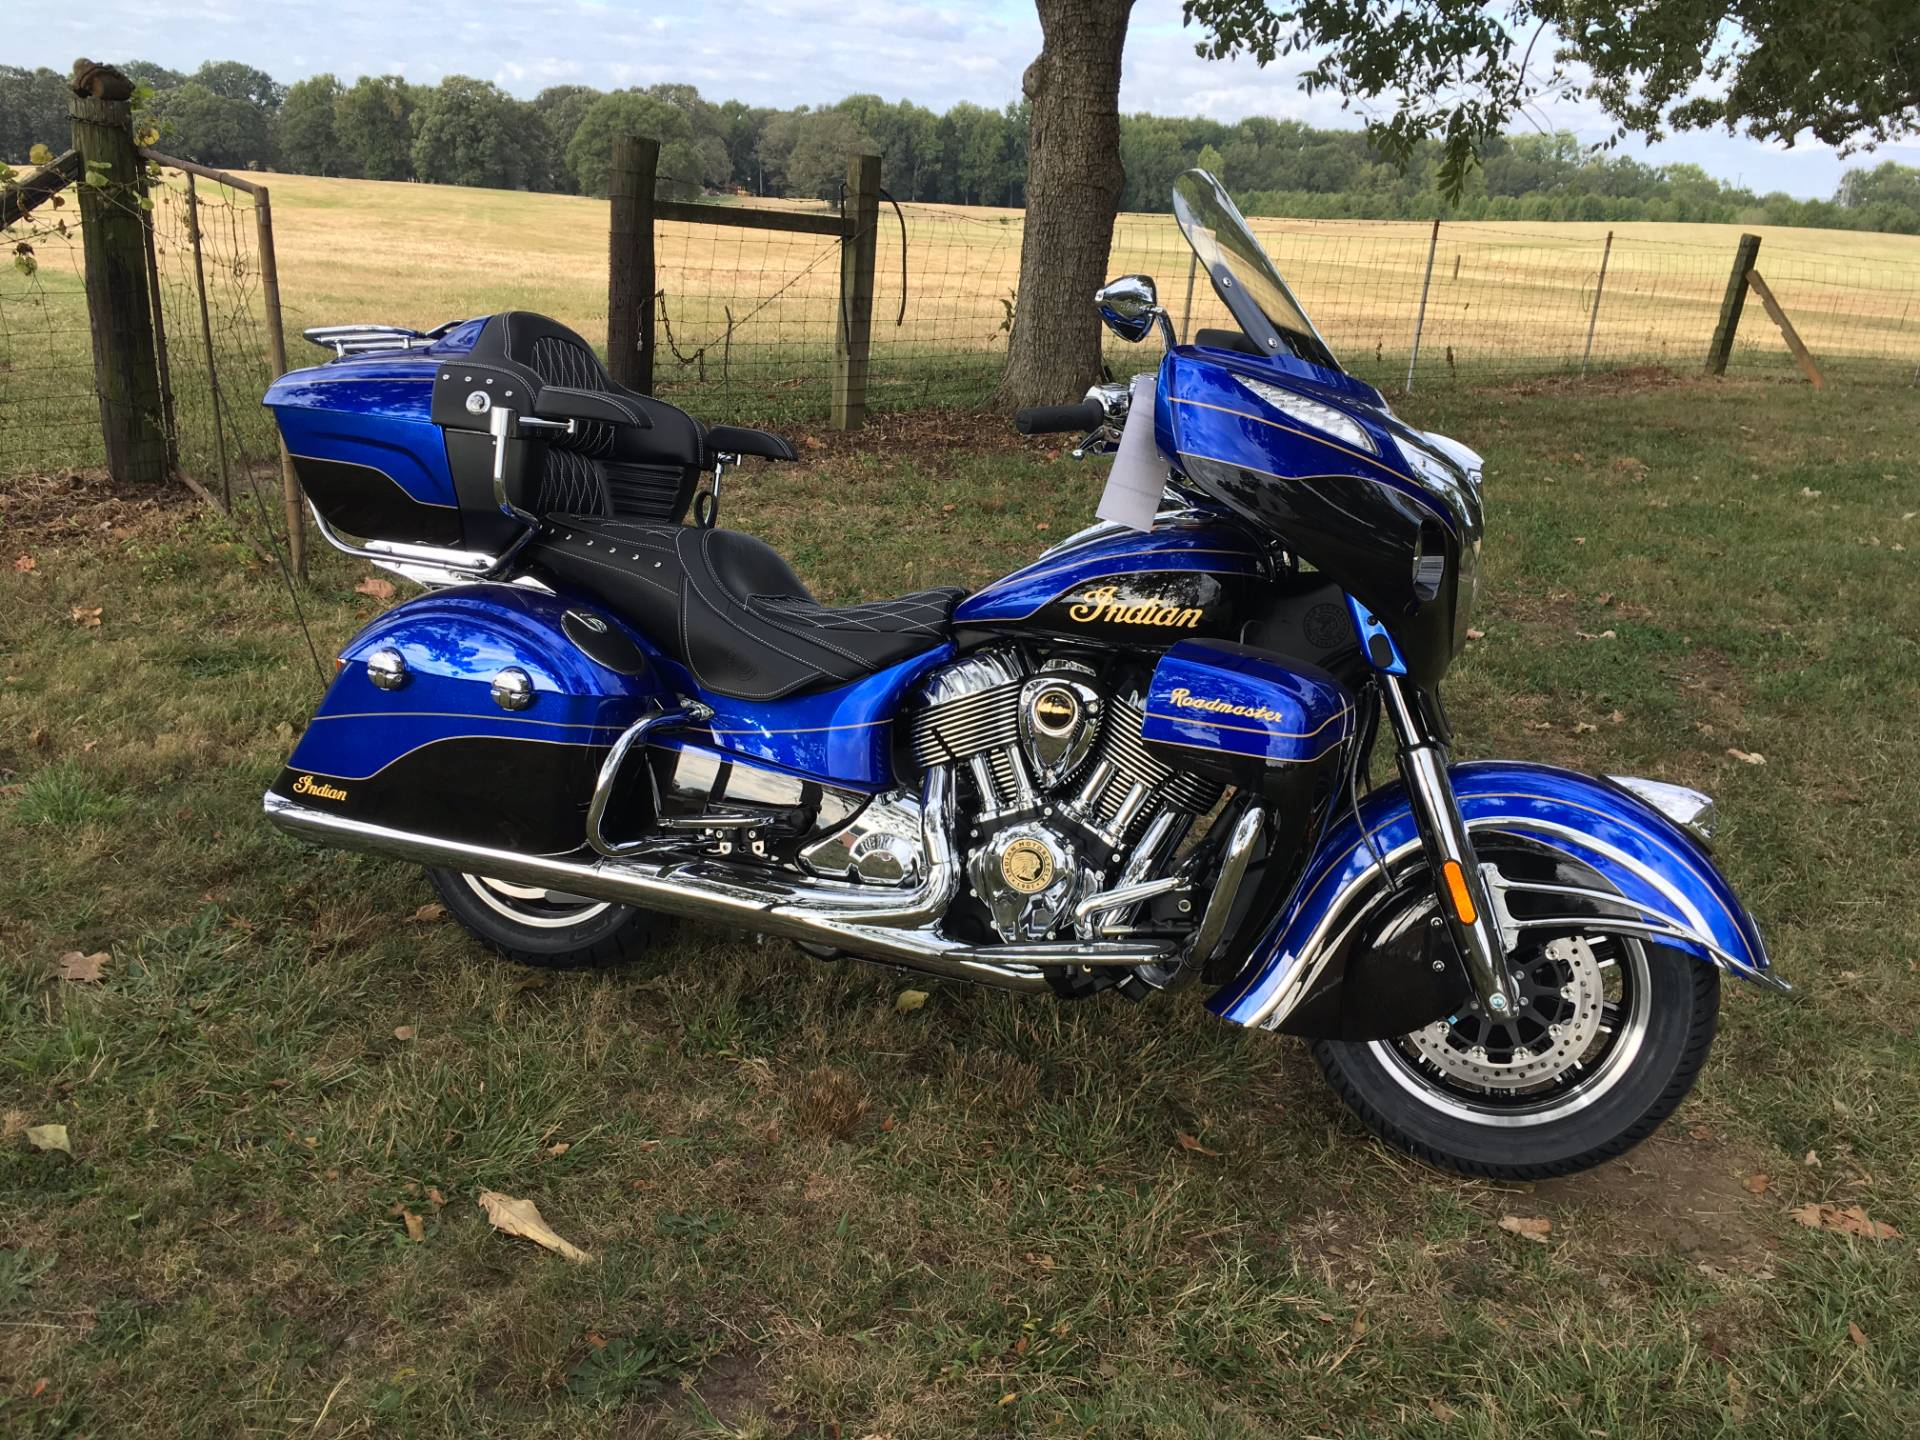 2018 Indian Roadmaster Elite for sale 6446